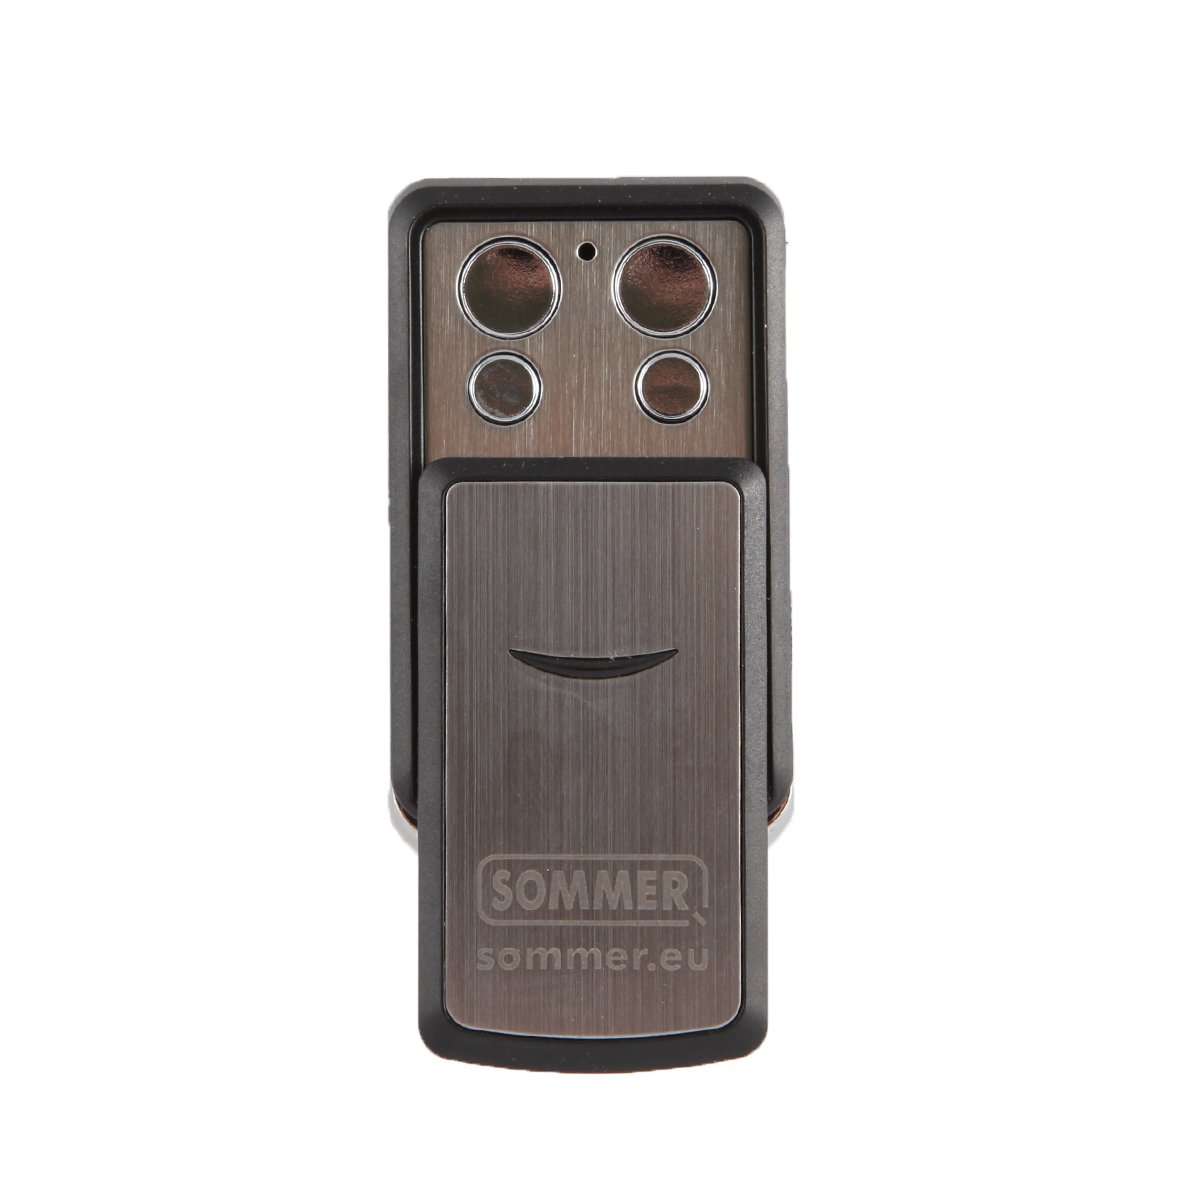 Sommer 4031 | Garage door remote